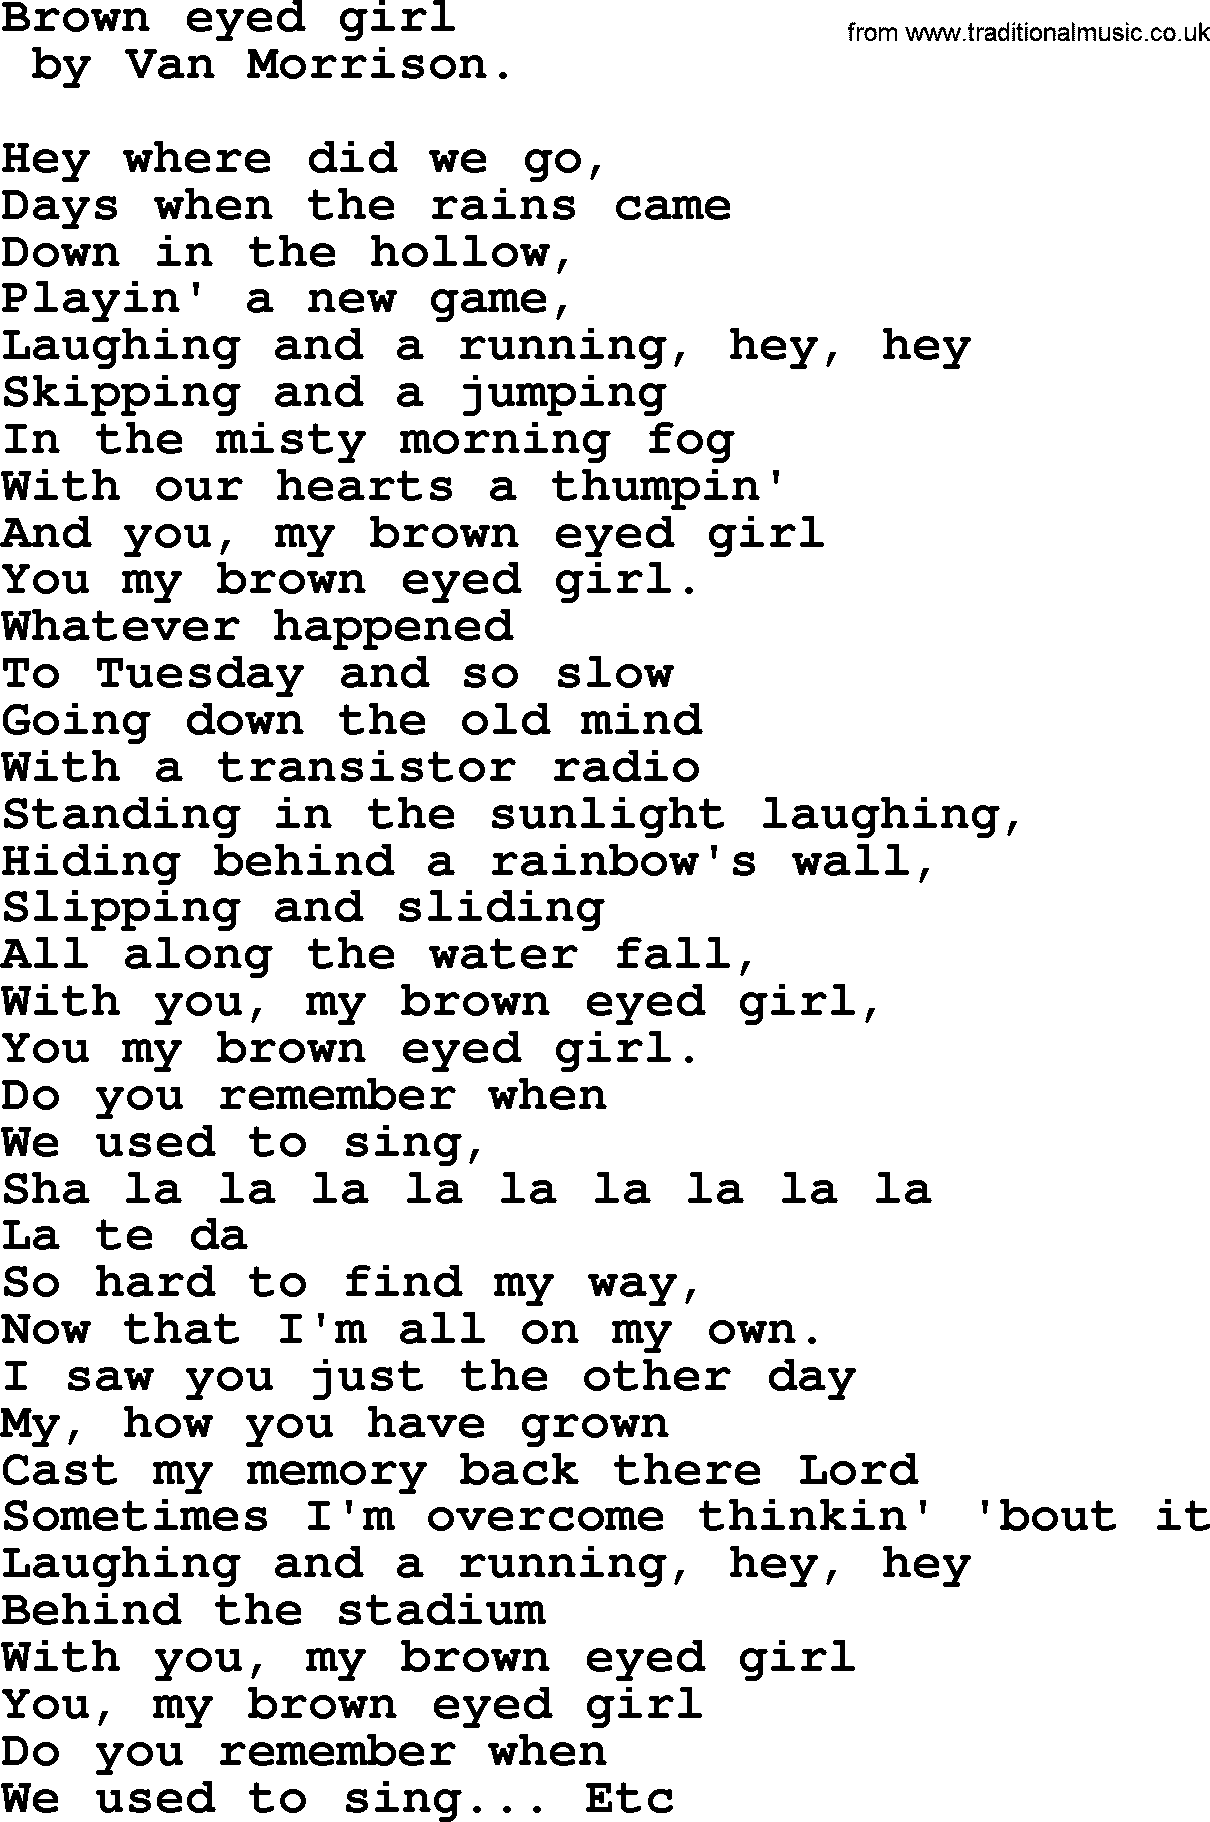 Bruce Springsteen Song Brown Eyed Girl Lyrics